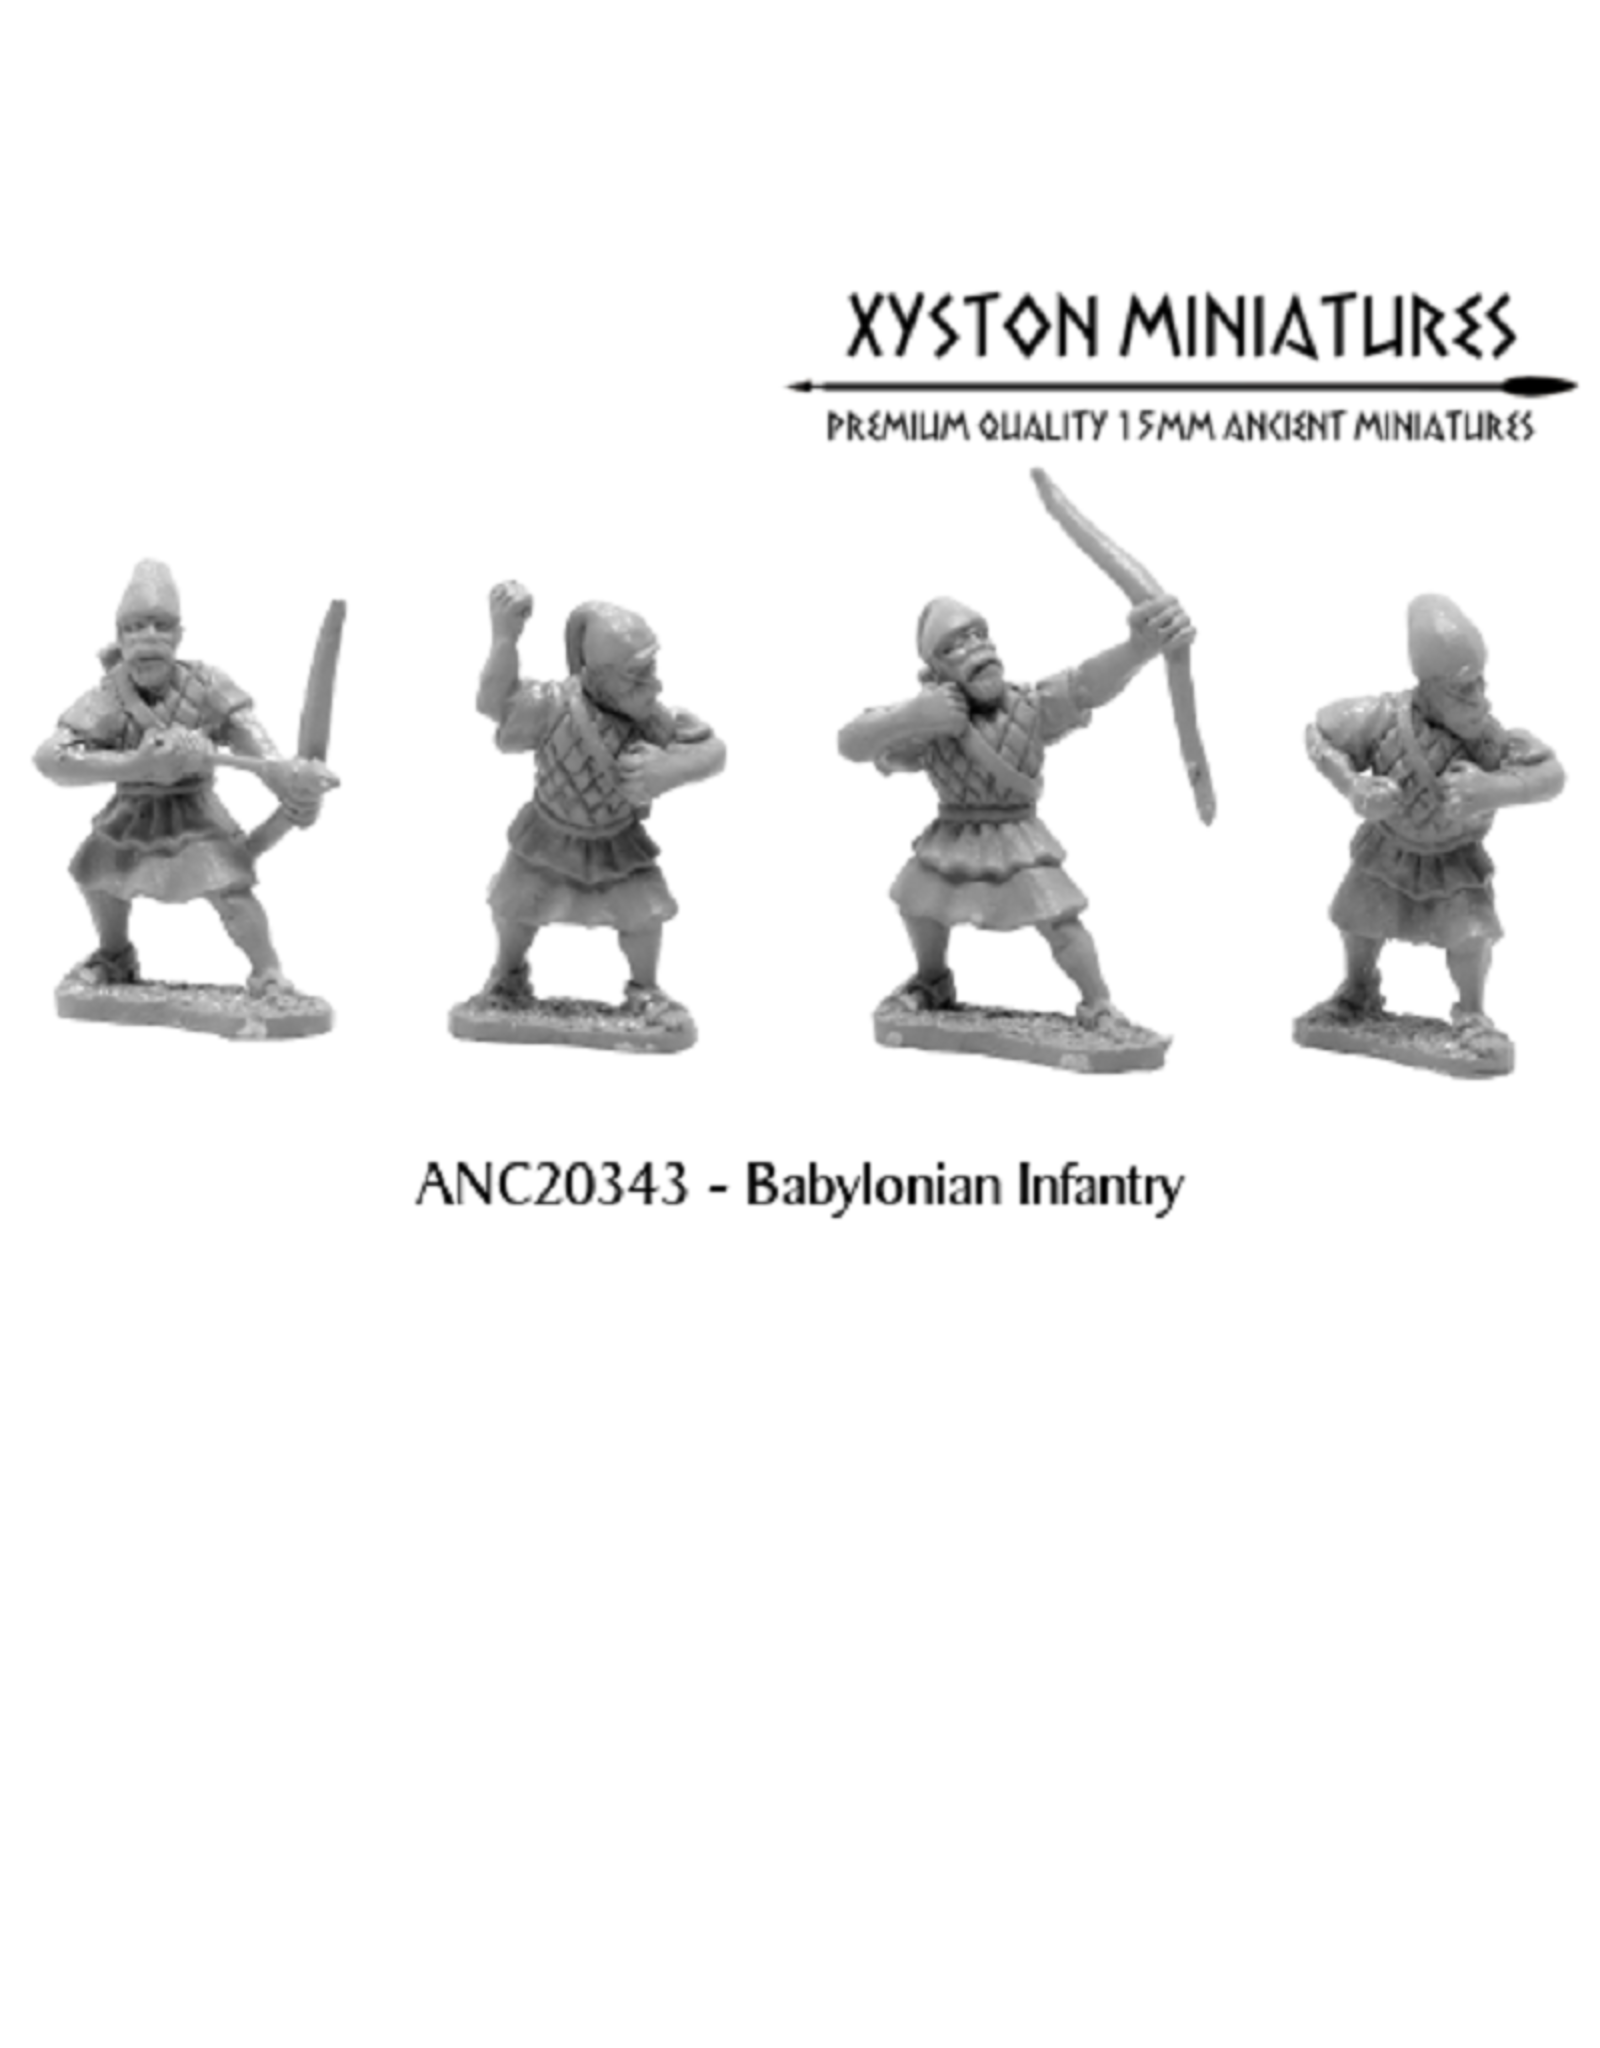 Xyston ANC20343 - Babylonian Infantry